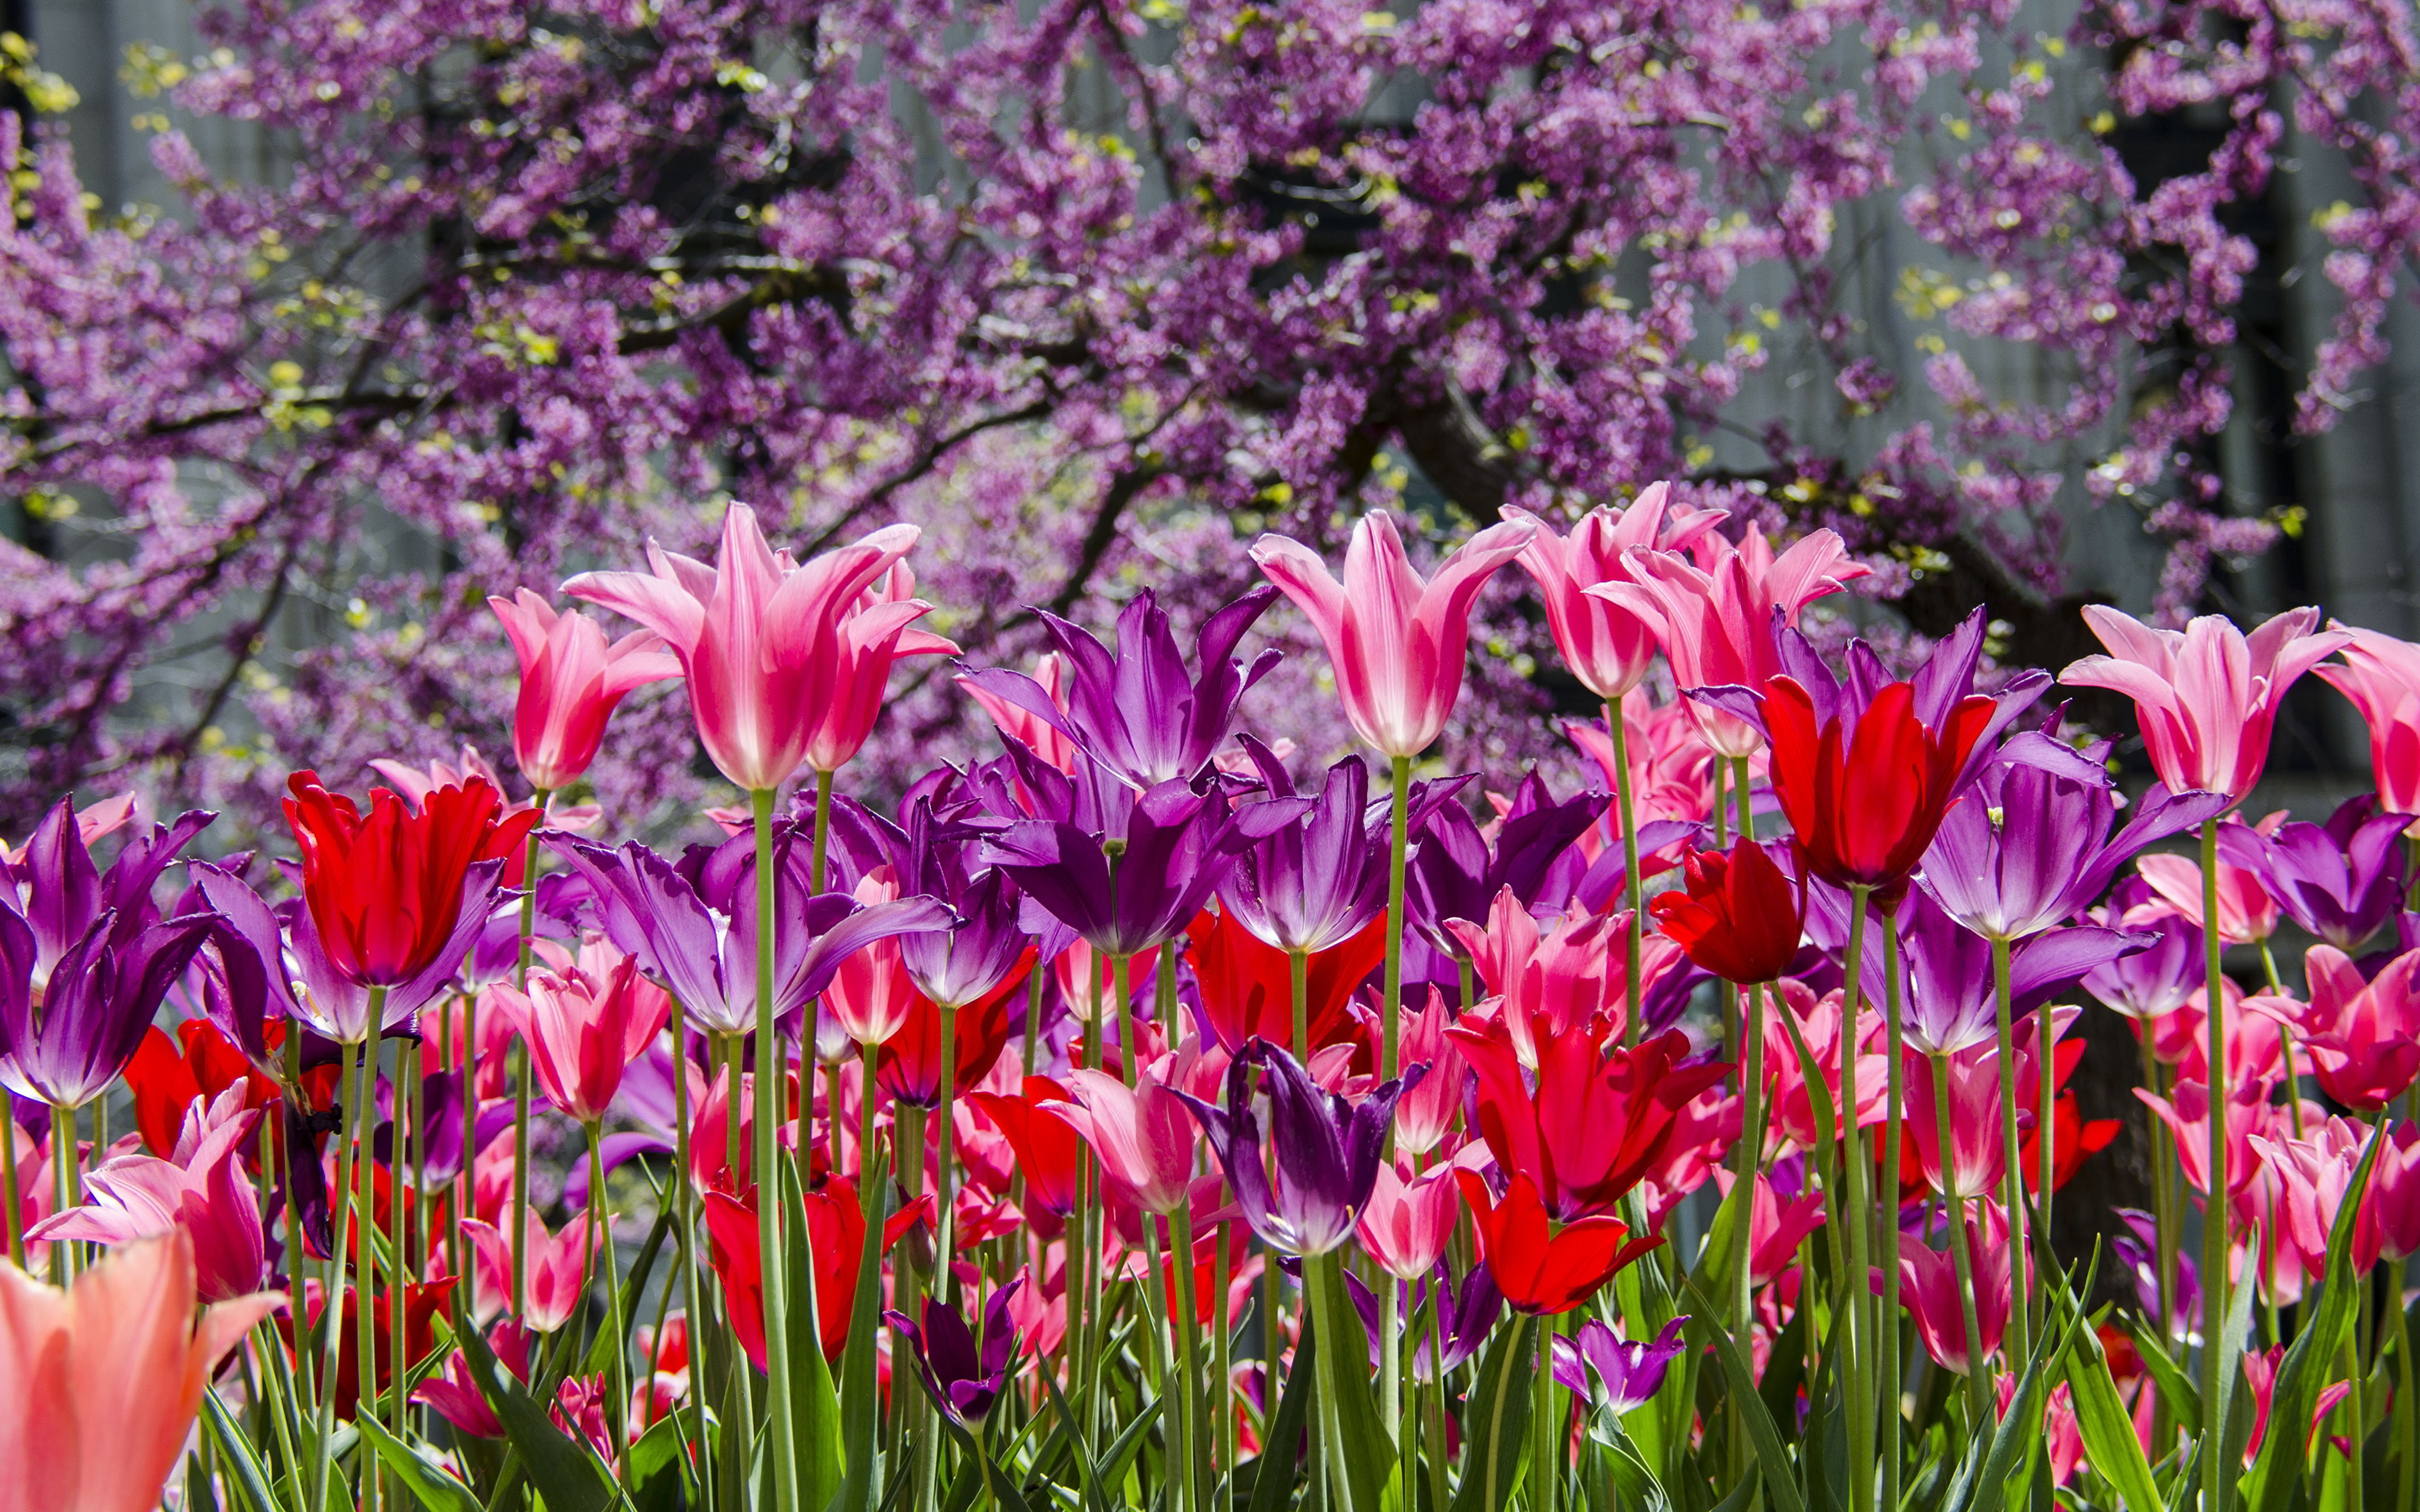 purple tulips hd wallpaper - photo #25